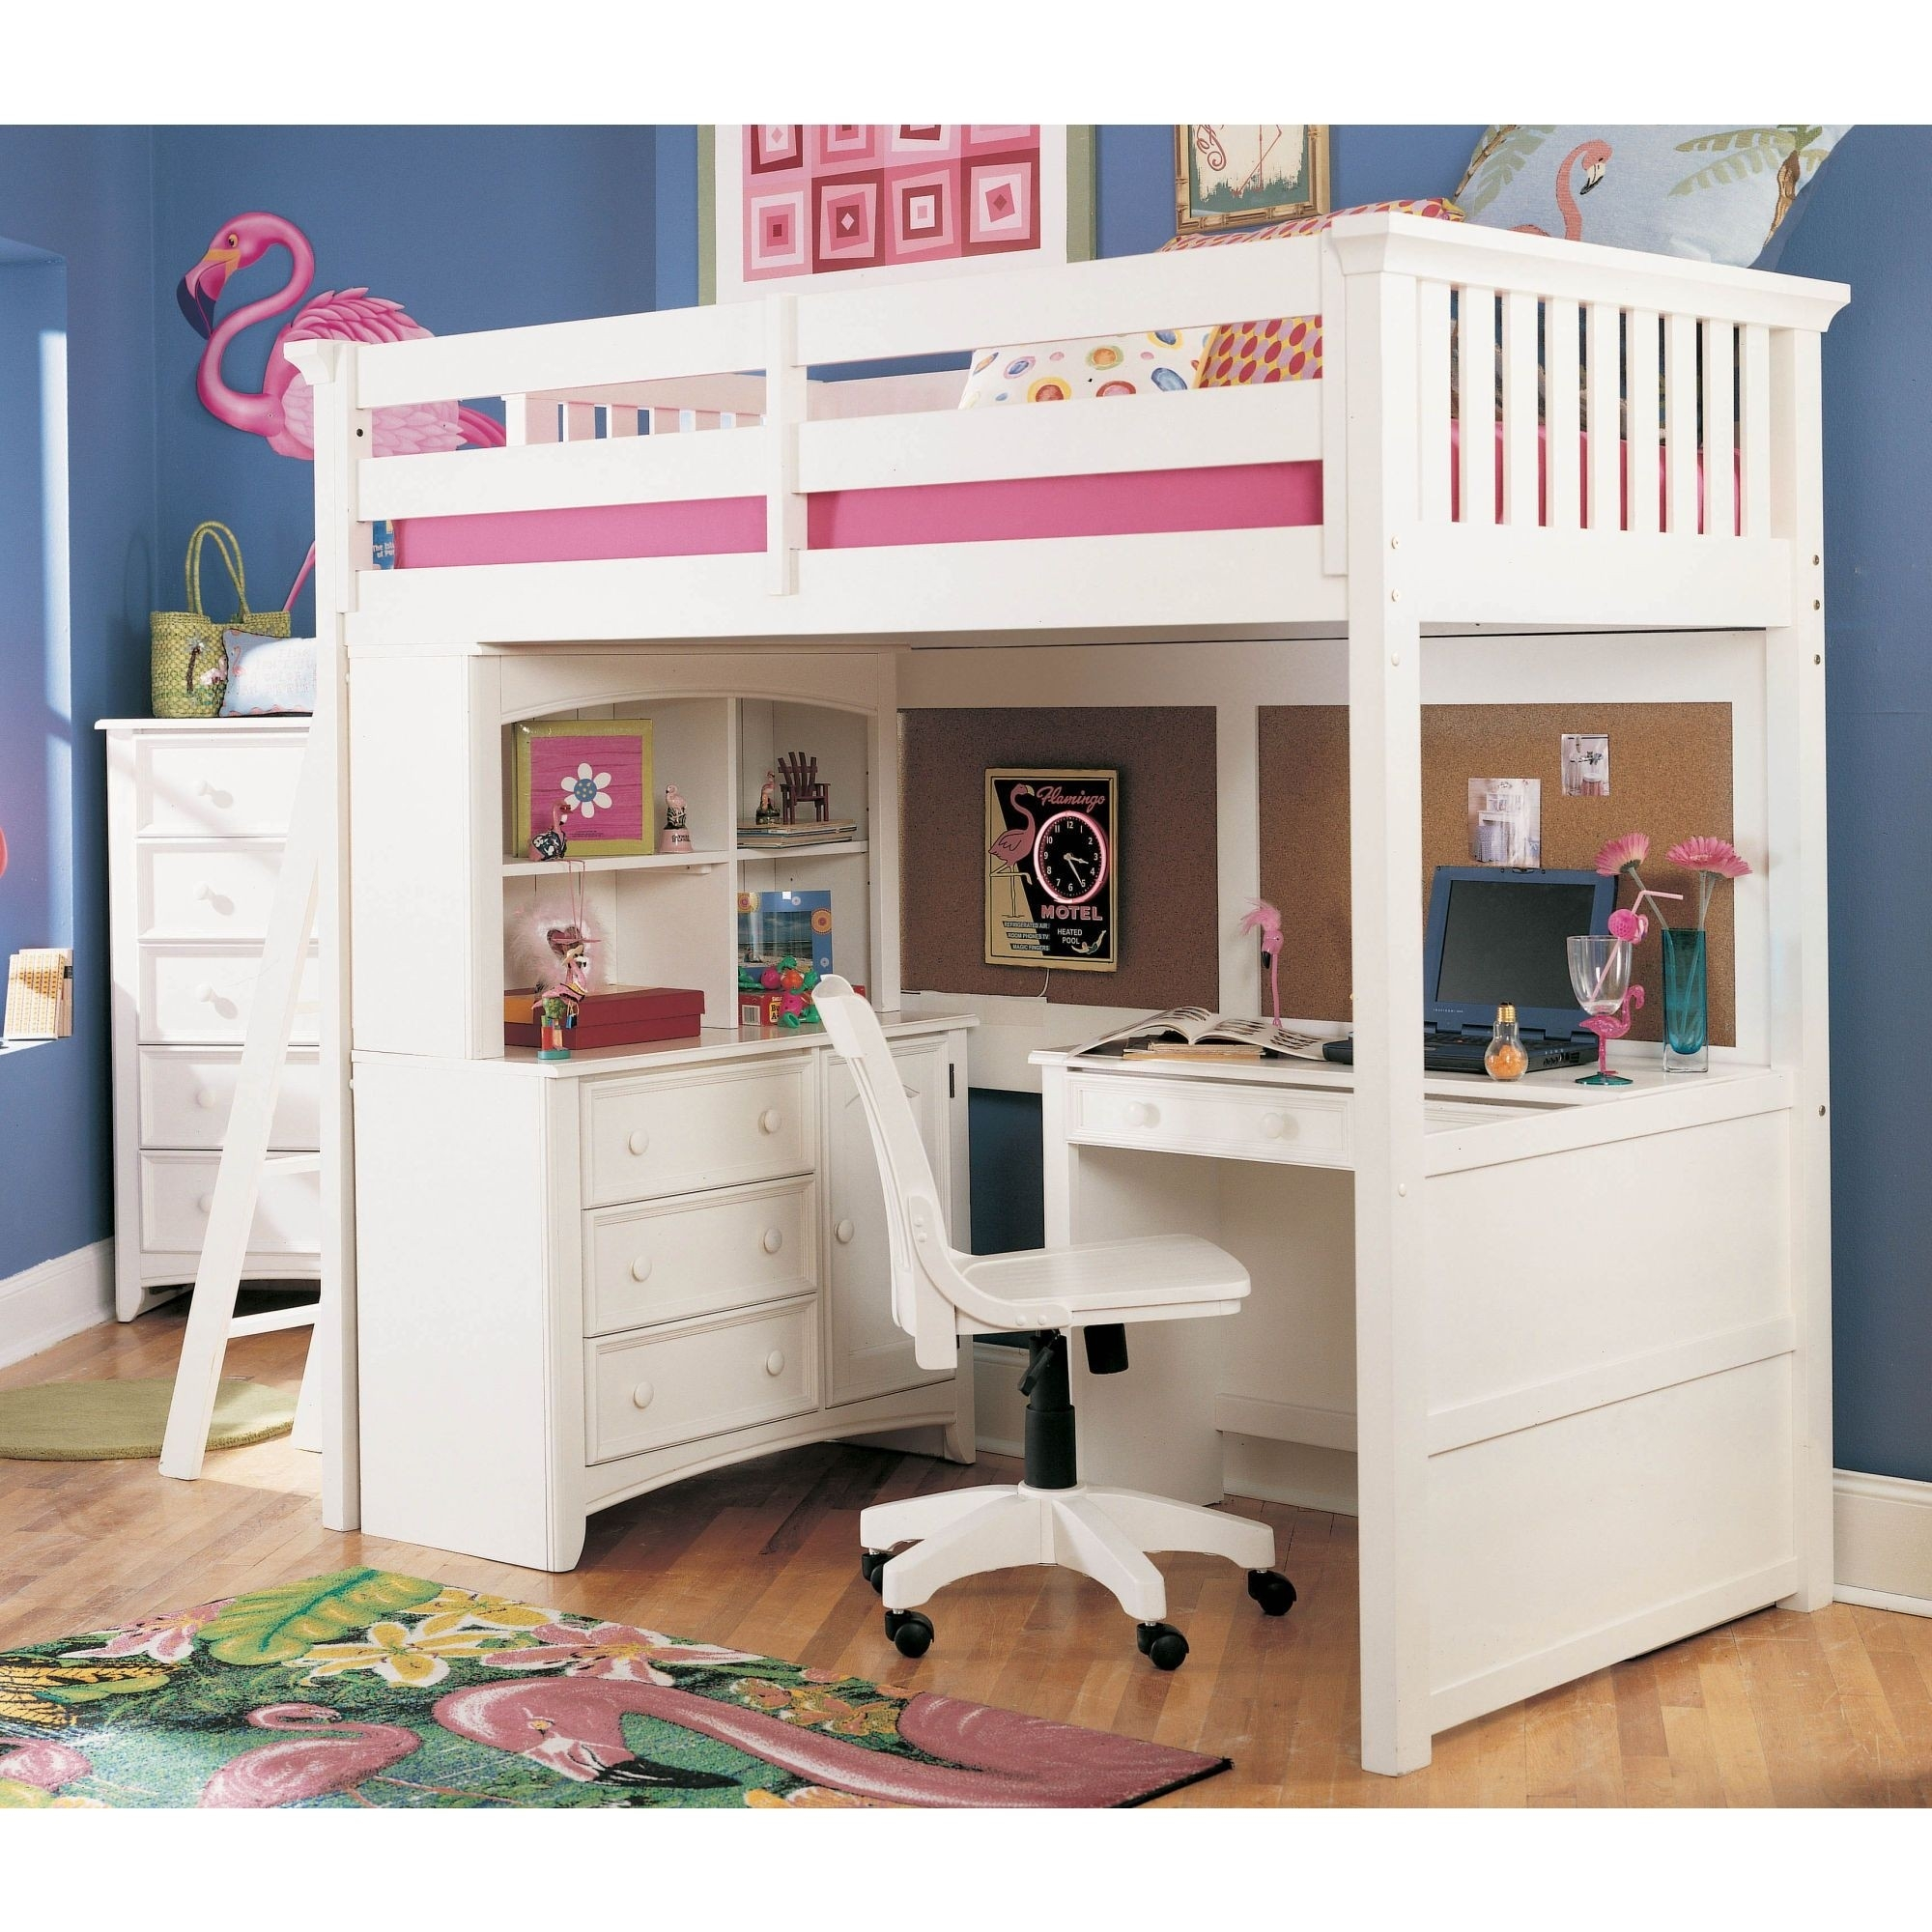 Loft Bed With Desk And Drawers Ideas On Foter